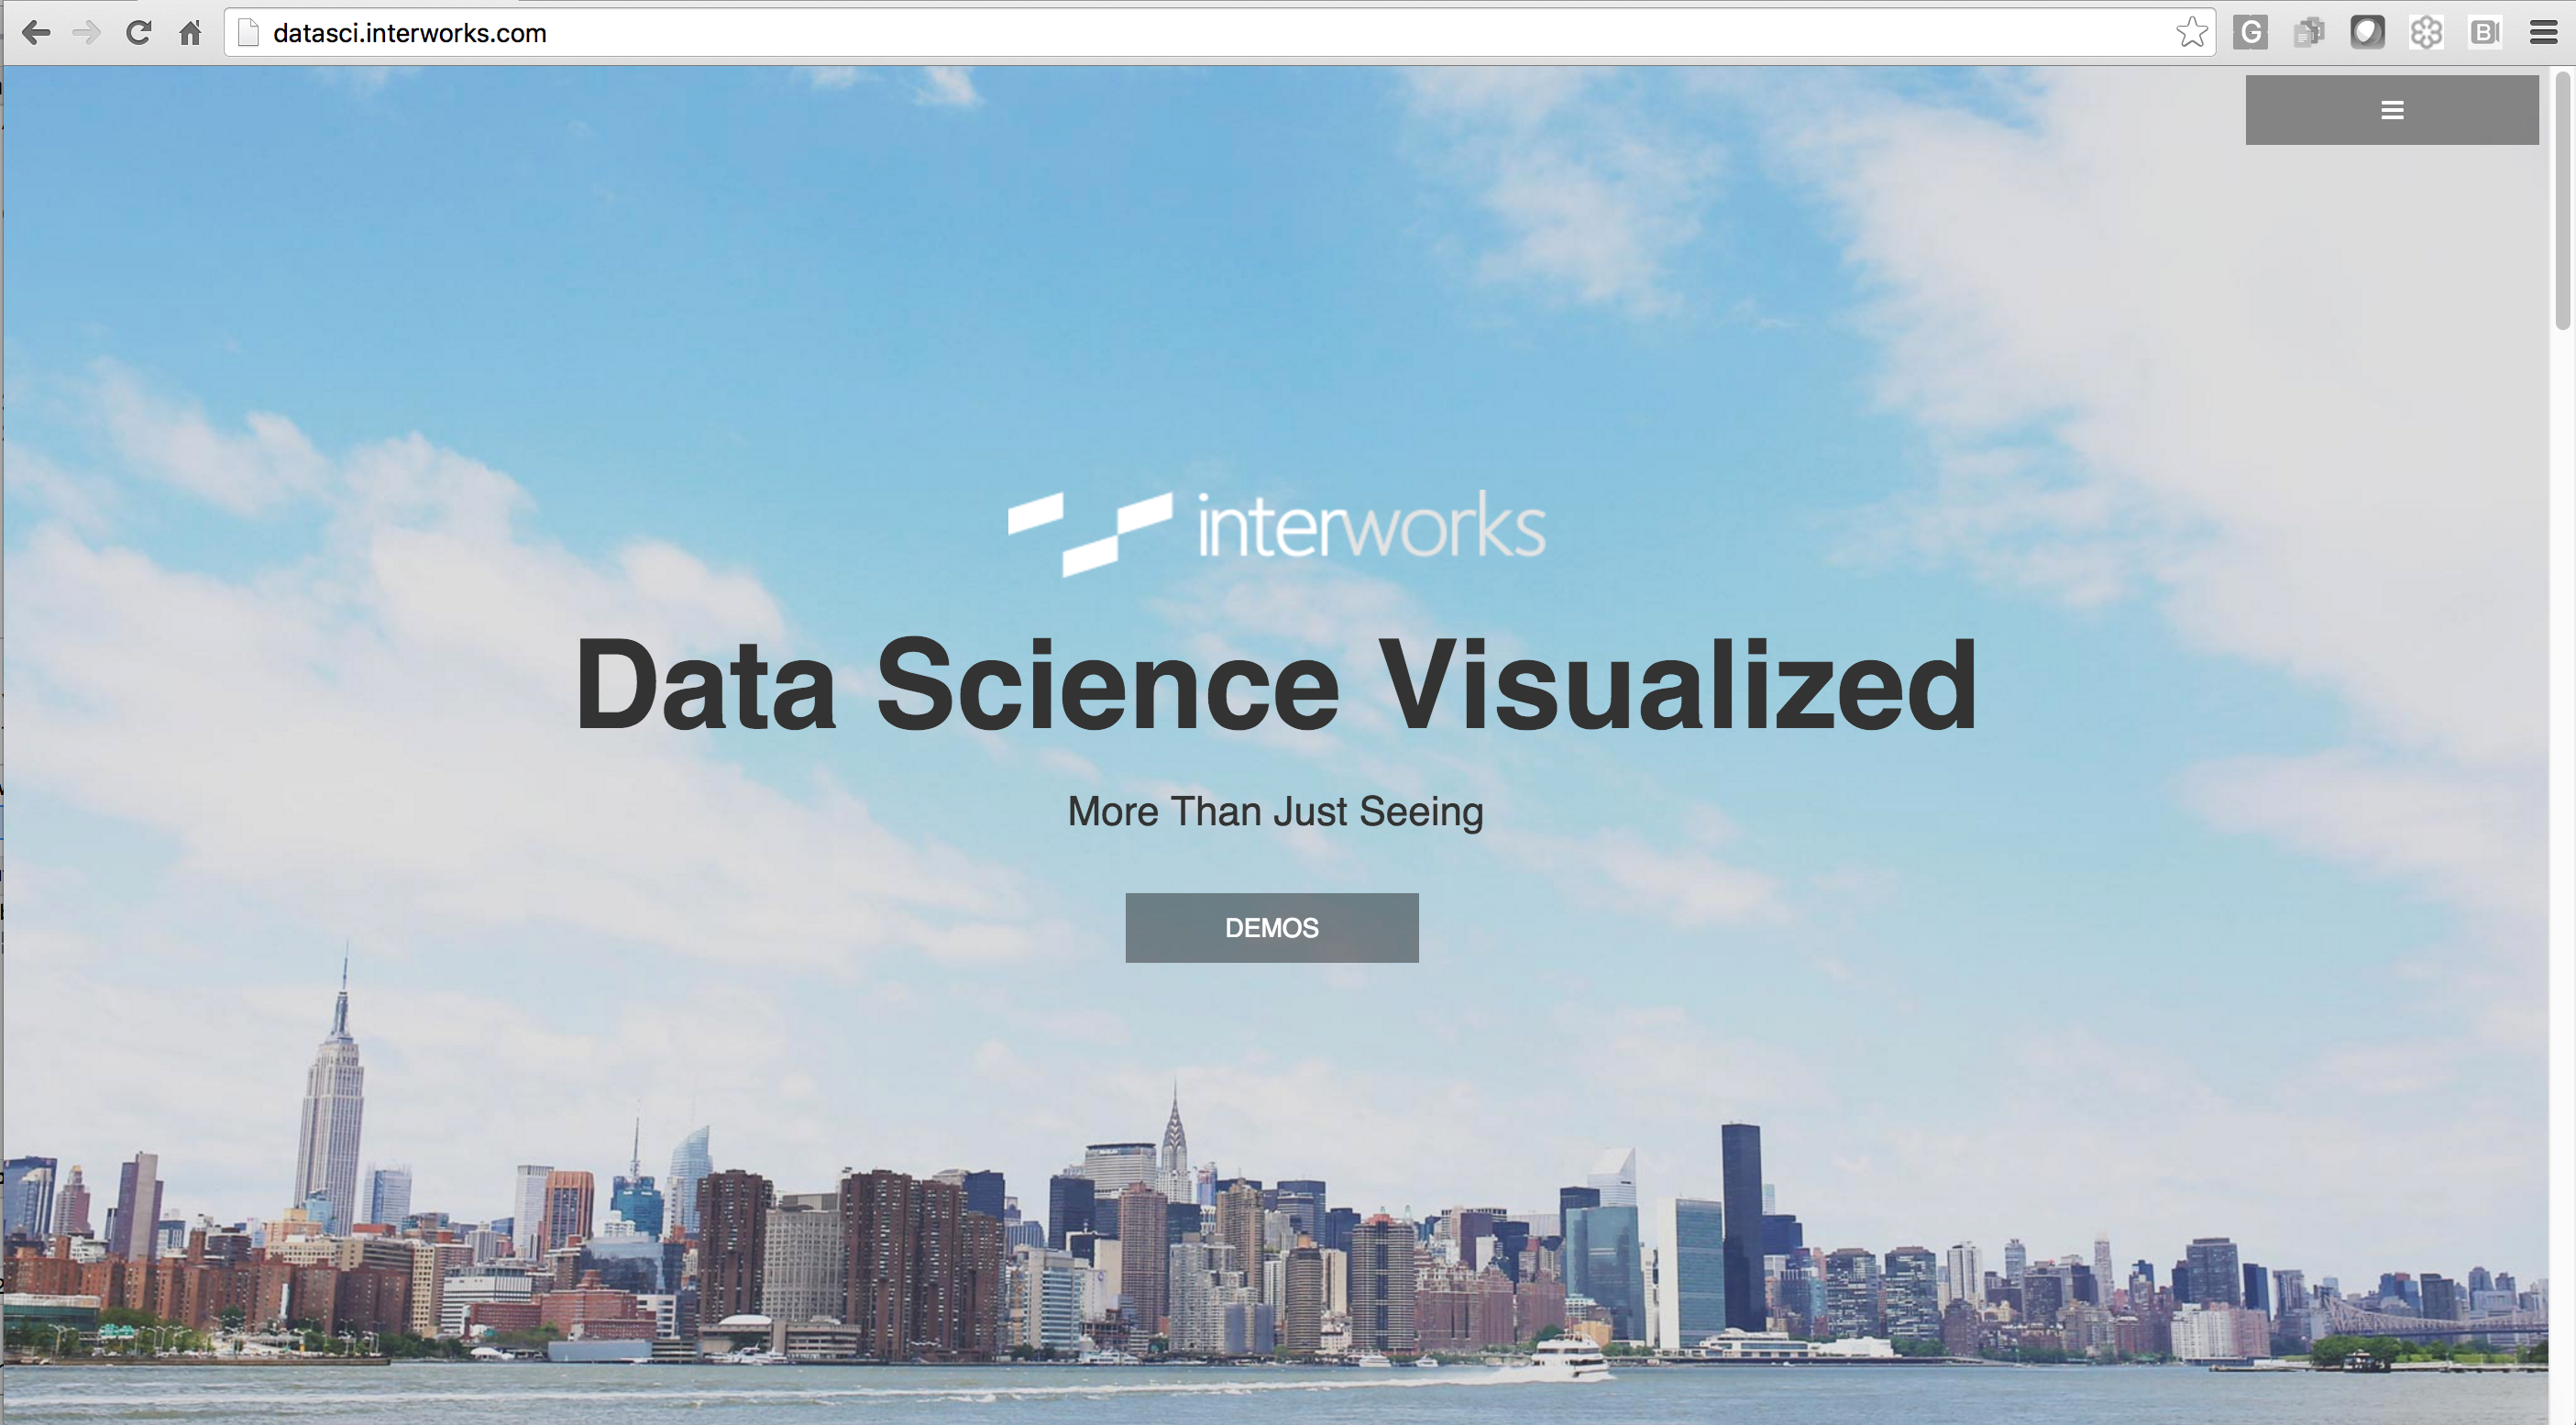 InterWorks' Data Science Portal